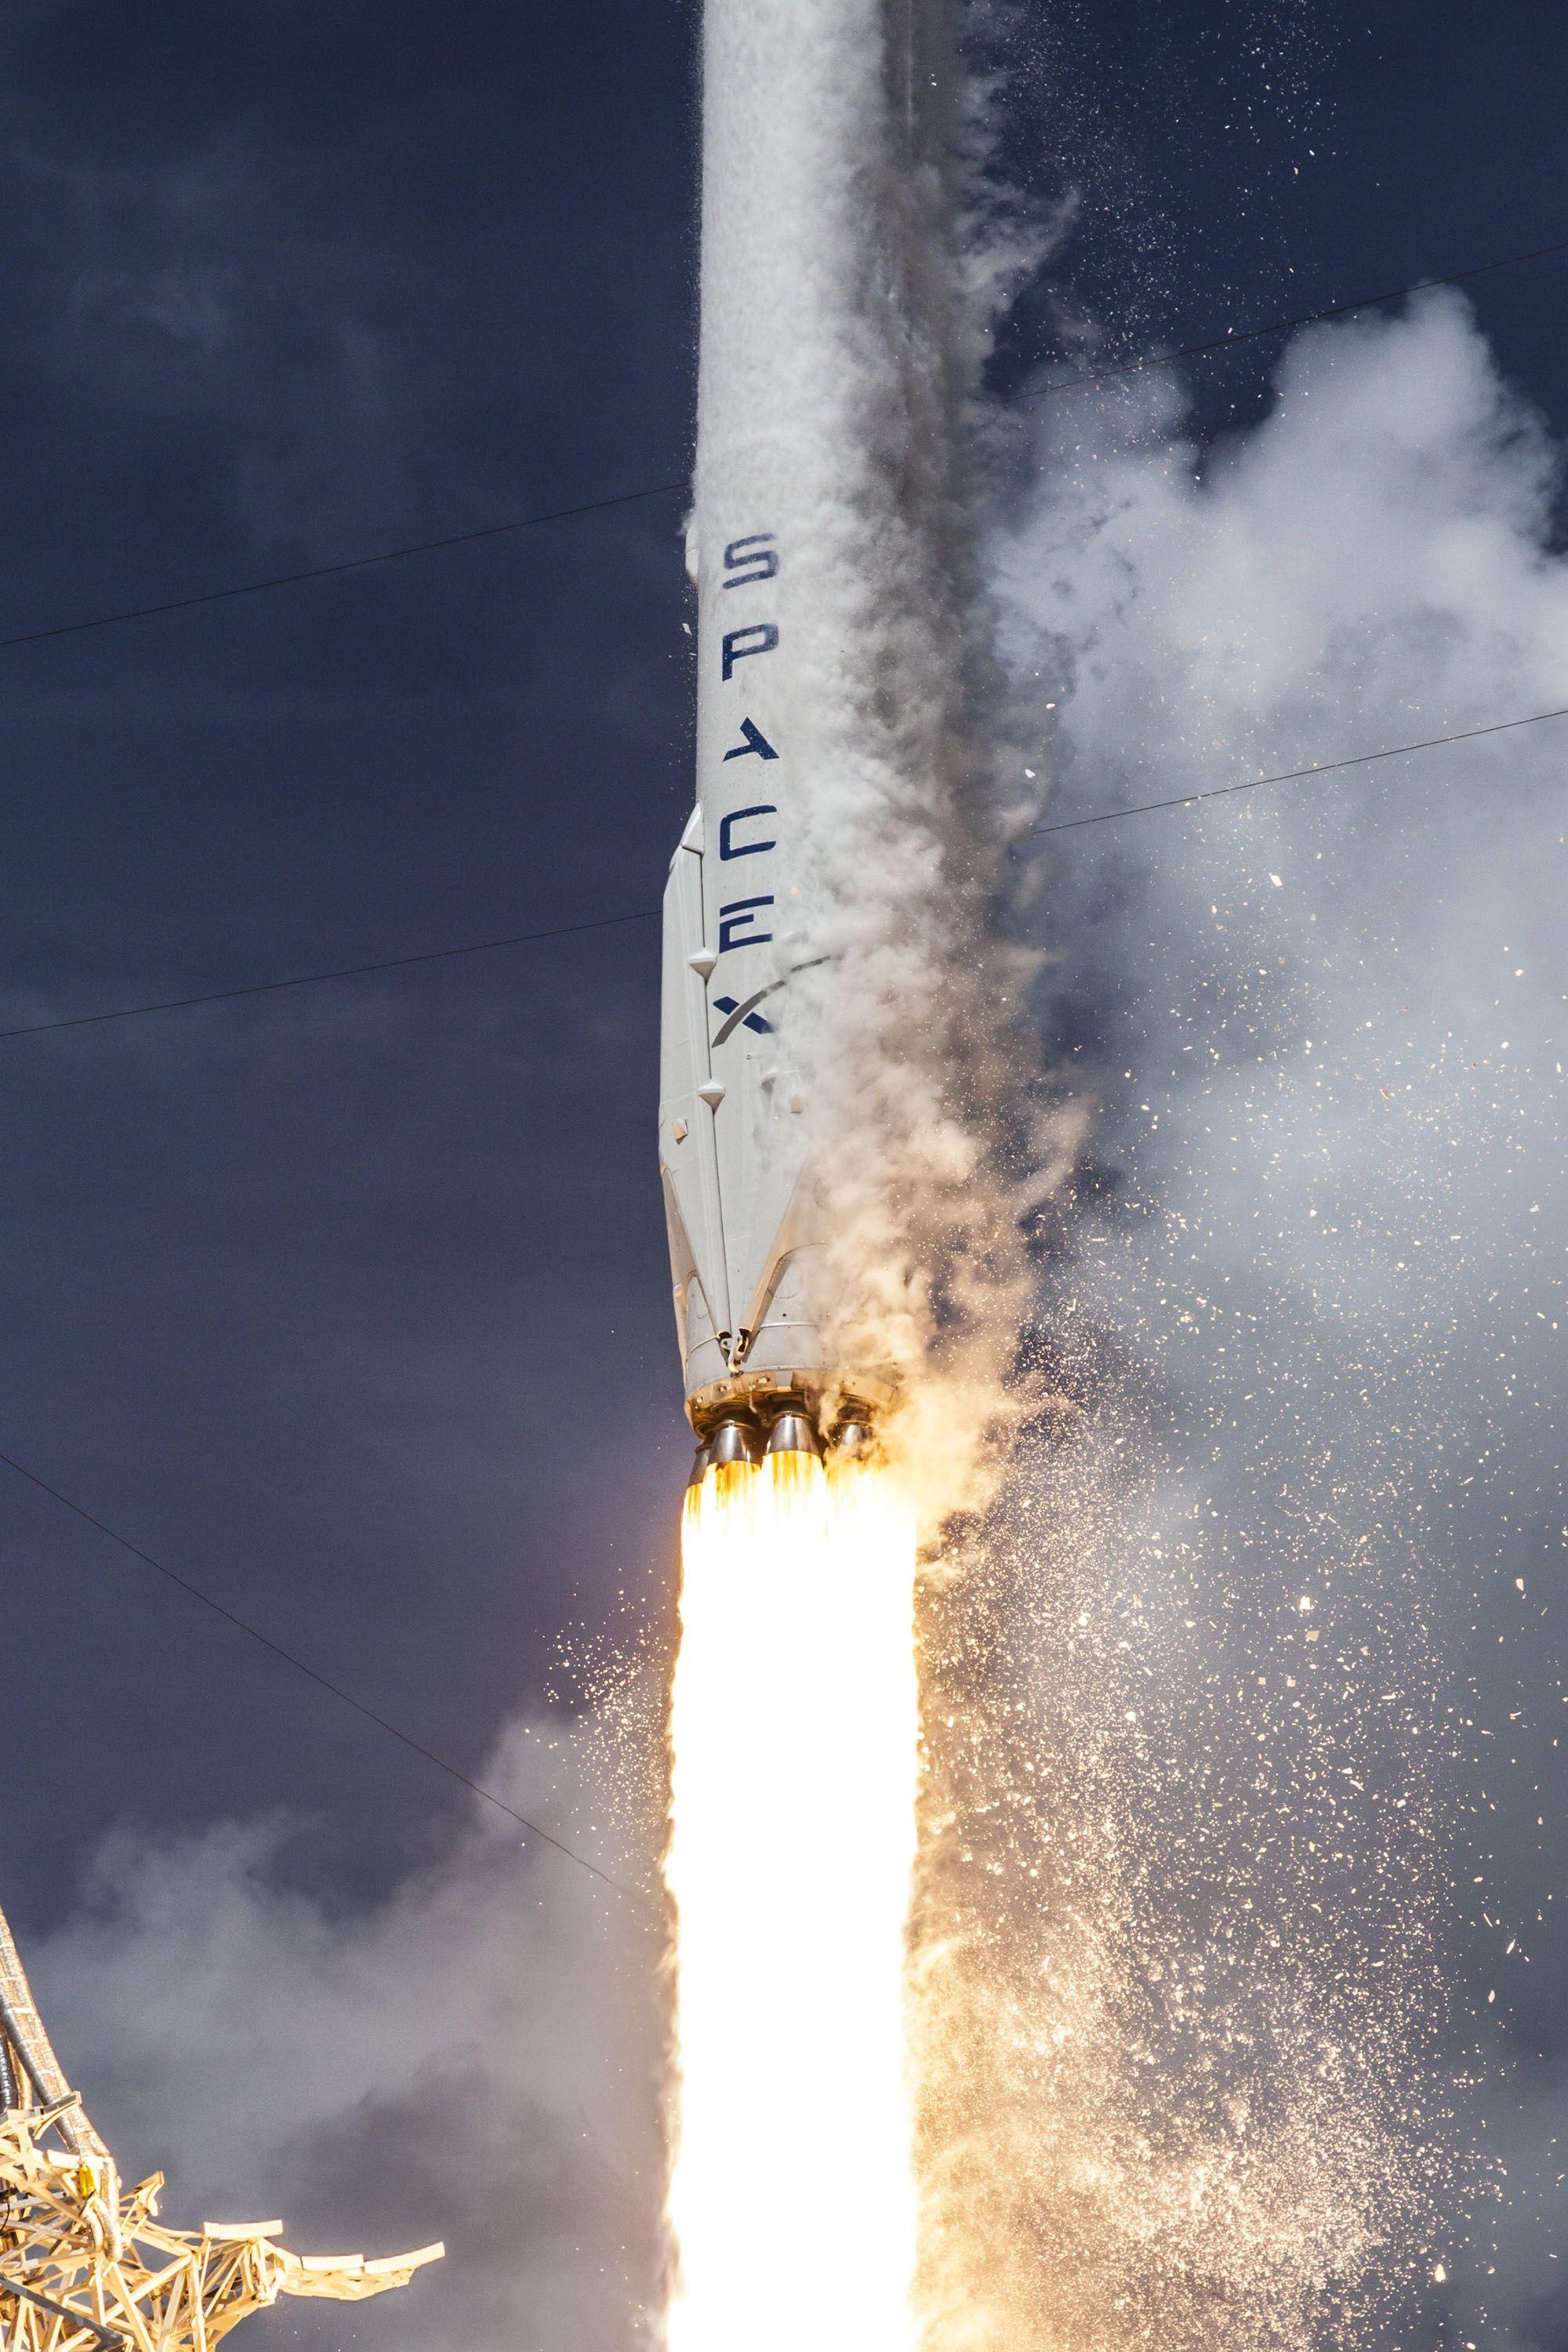 SpaceX Iphone Wallpaper